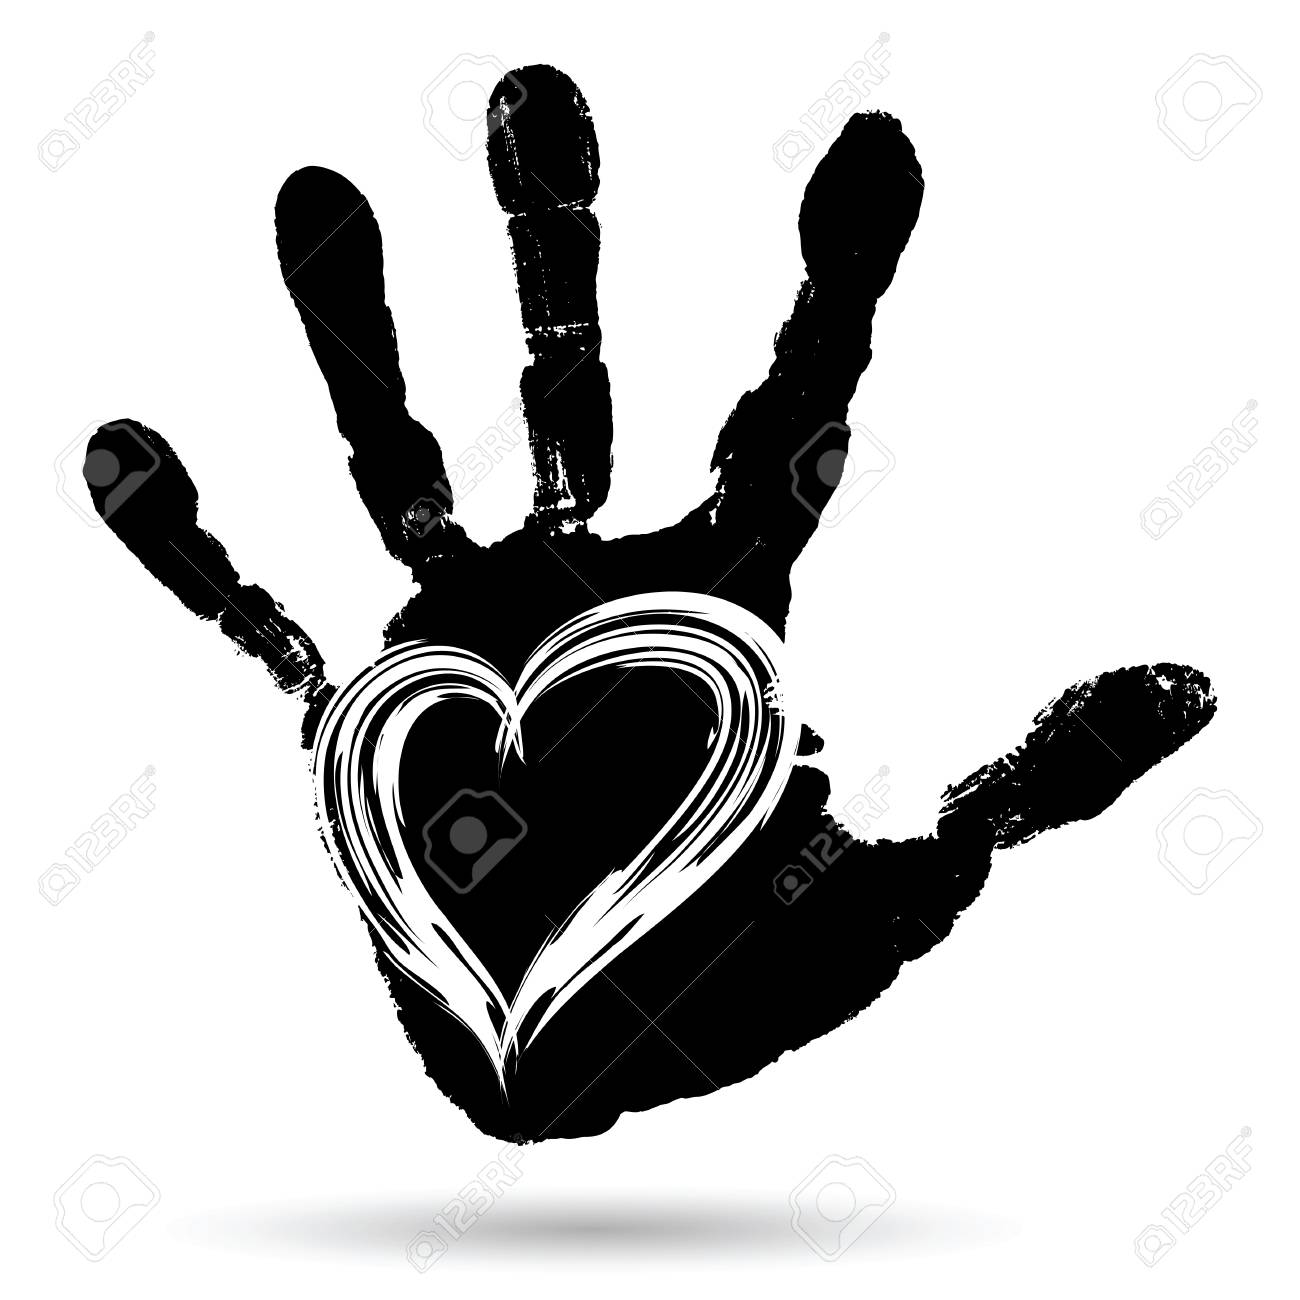 Conceptual Cute Paint Human Hand Or Handprint Of Child With Heart Shape Isolated On White Background